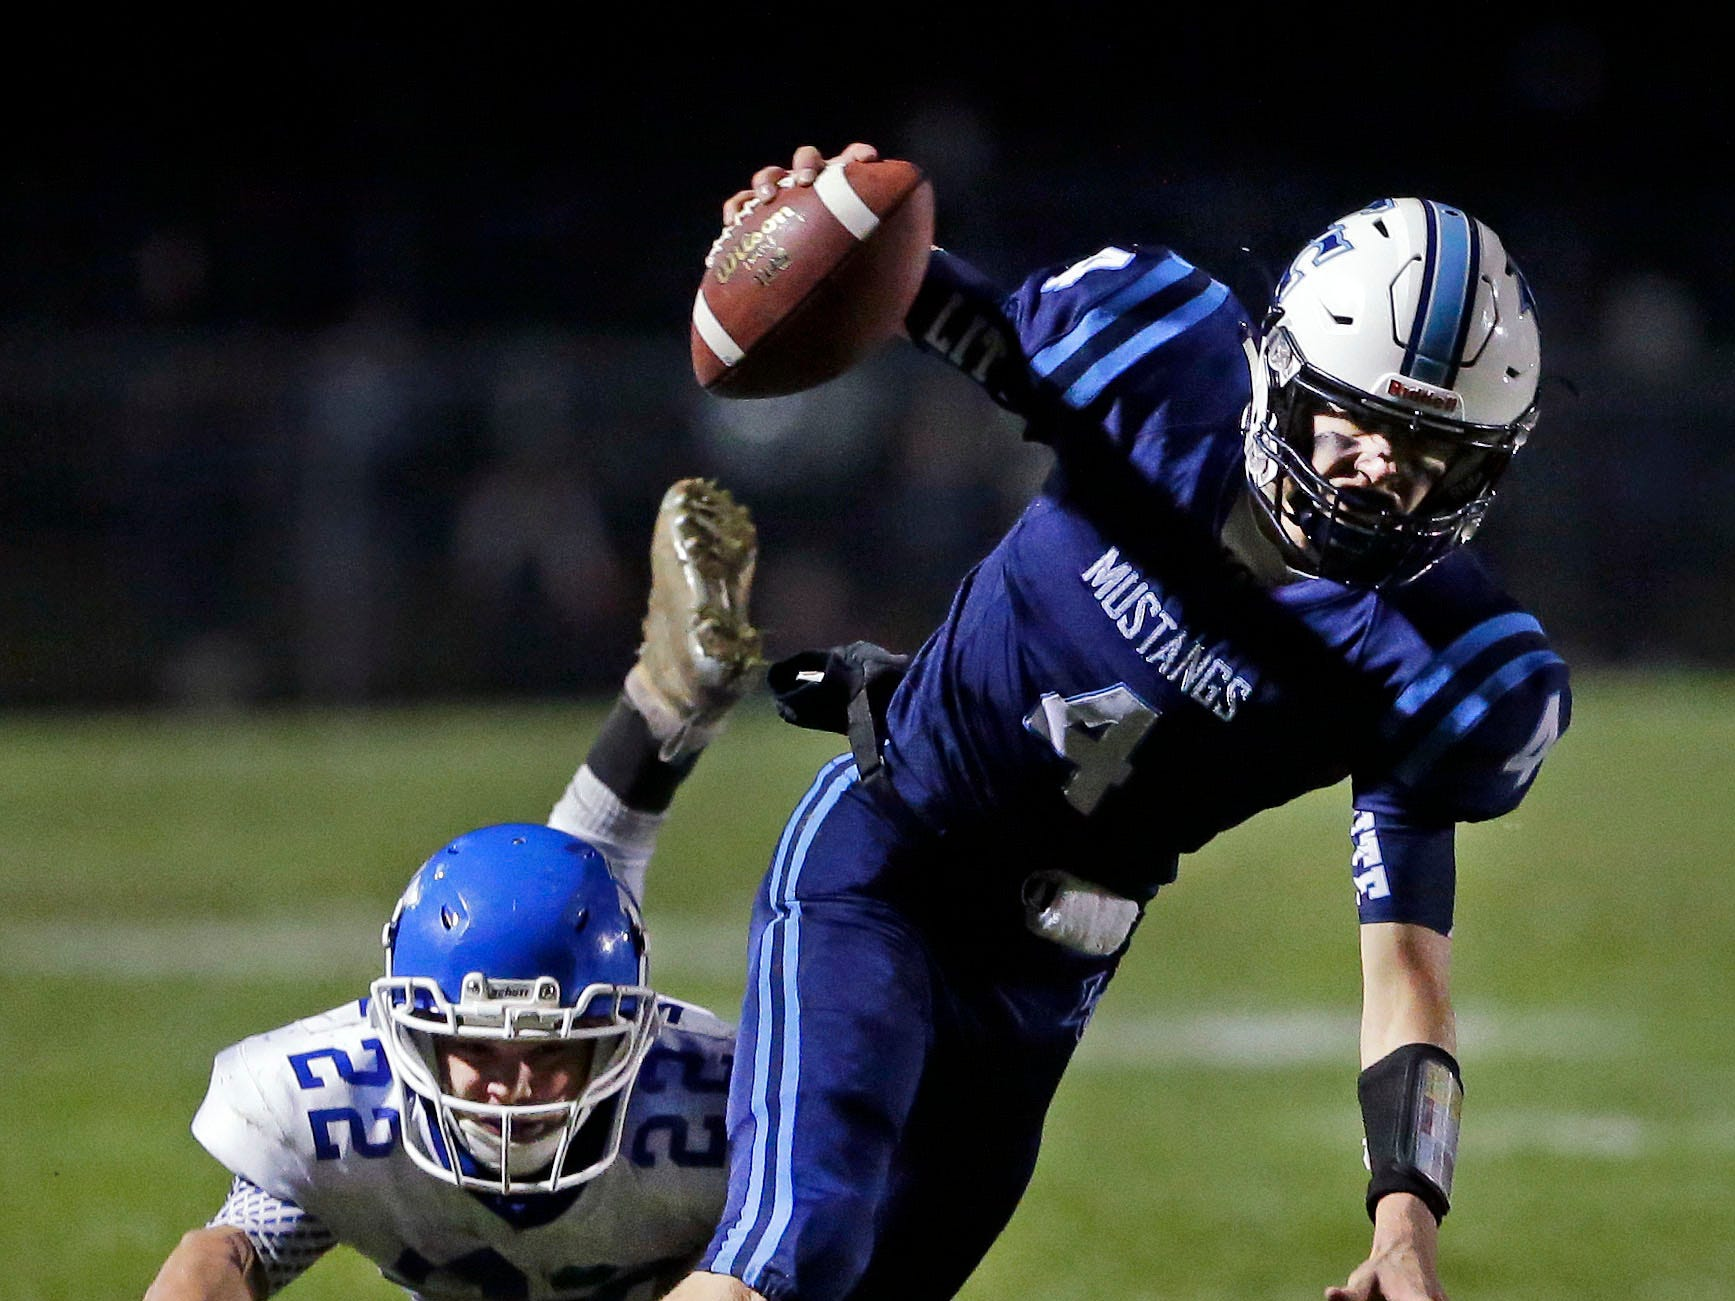 Quarterback Noah Mueller of Little Chute scrambles with the ball as he is tackled by Walker Vande Hey of Wrightstown in a WIAA Division 4 Level 3 playoff game Friday, November 2, 2018, at Fitzpatrick Field in Little Chute, Wis.Ron Page/USA TODAY NETWORK-Wisconsin